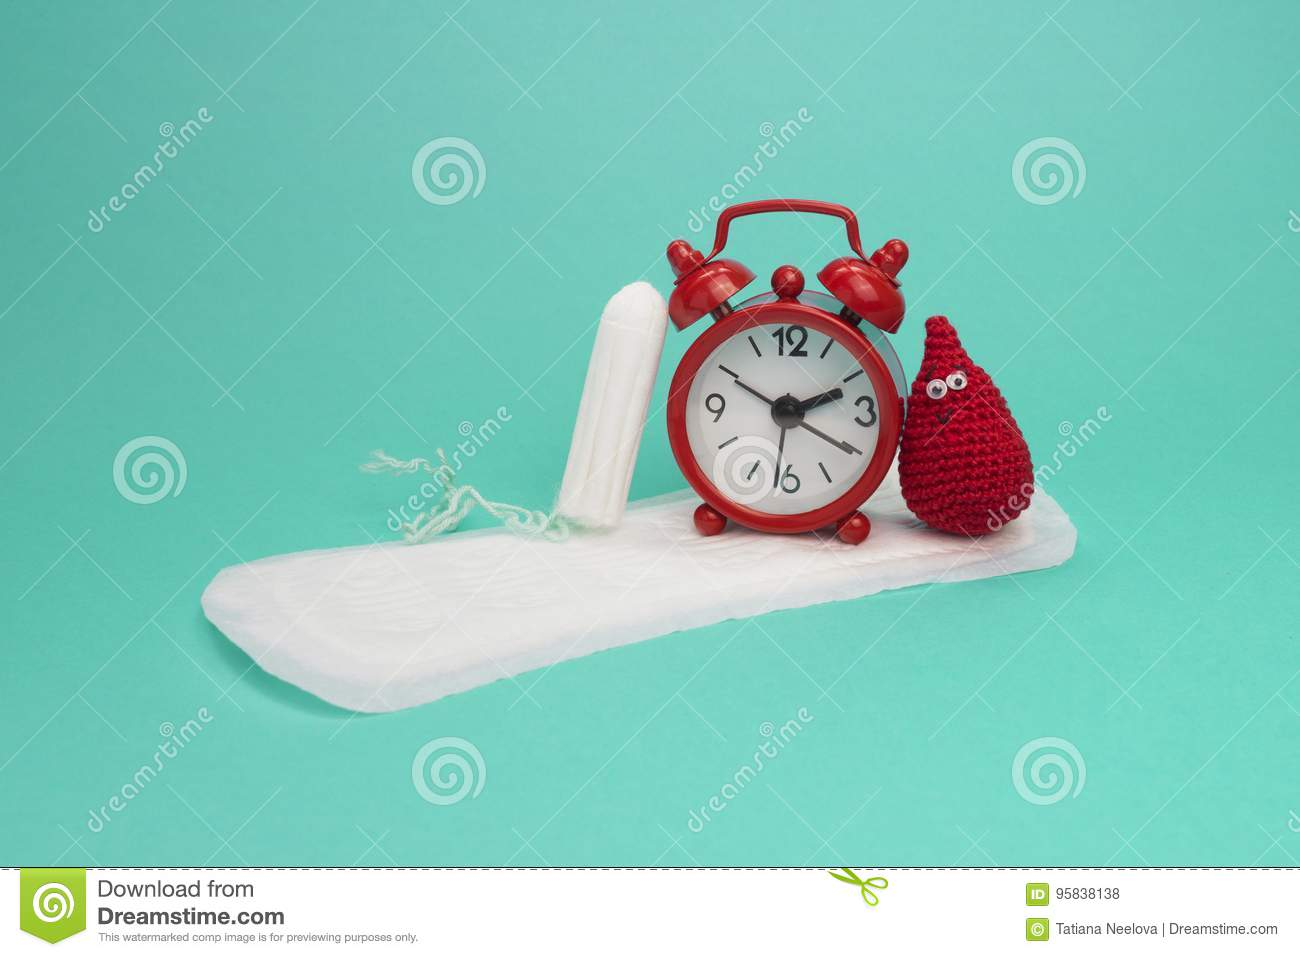 Red alarm clock, smile crochet blood drop, daily menstrual pad and tampon. Menstruation sanitary woman hygiene. Woman critical day